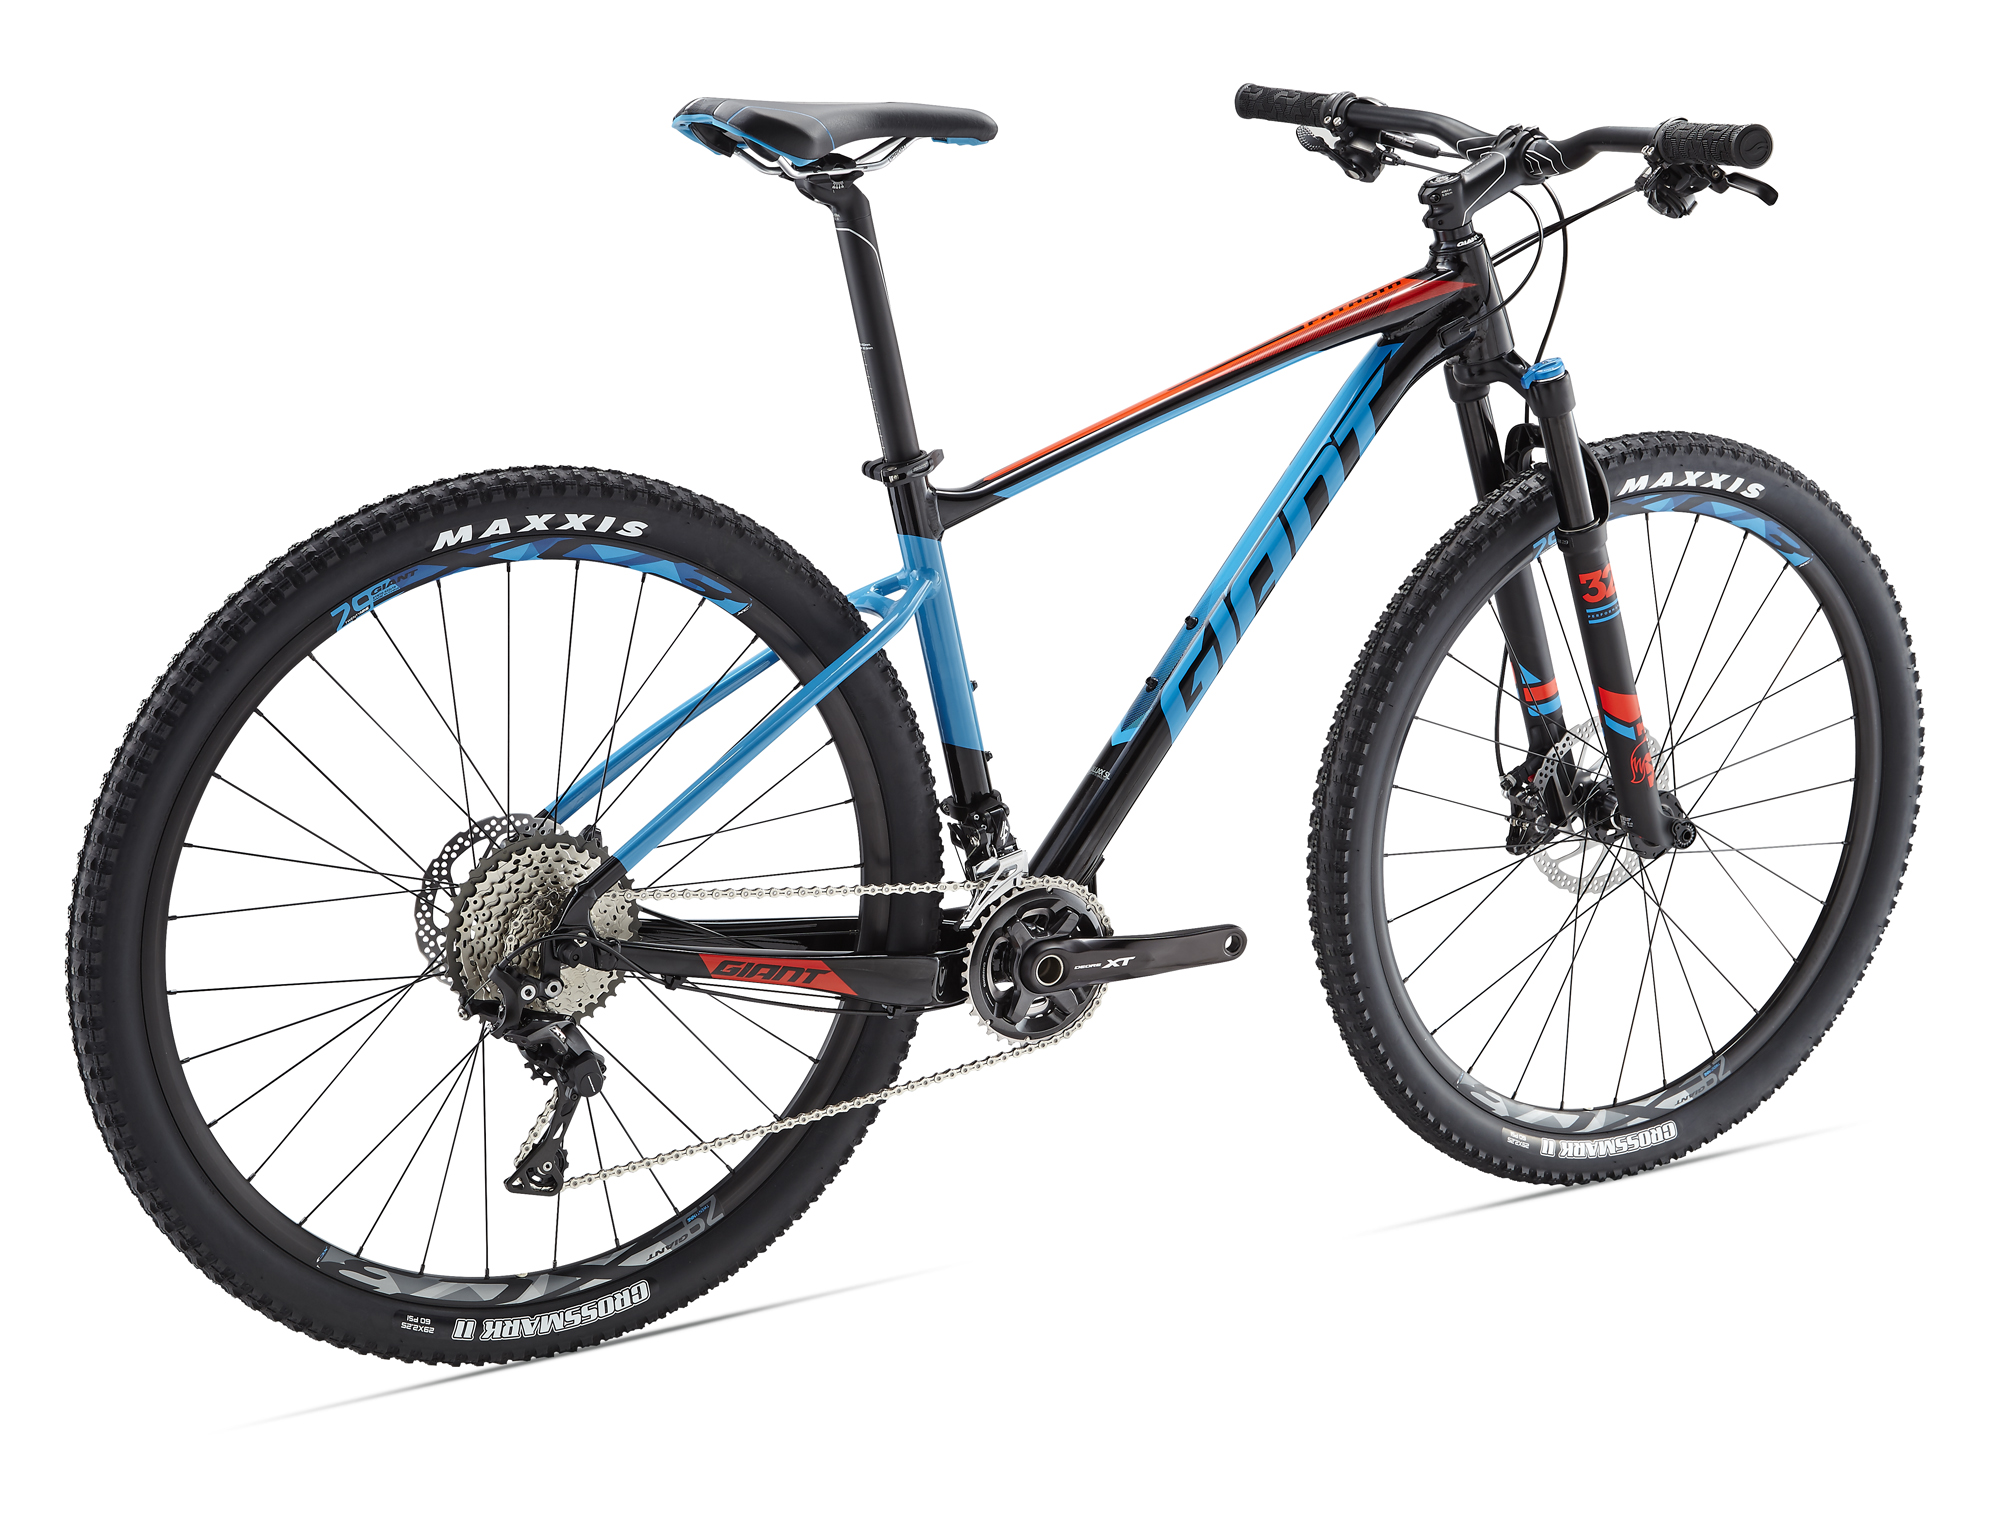 Bigger wheels and a steeper headtube angle make the Fathom 29 the best choice for XC aficionados.